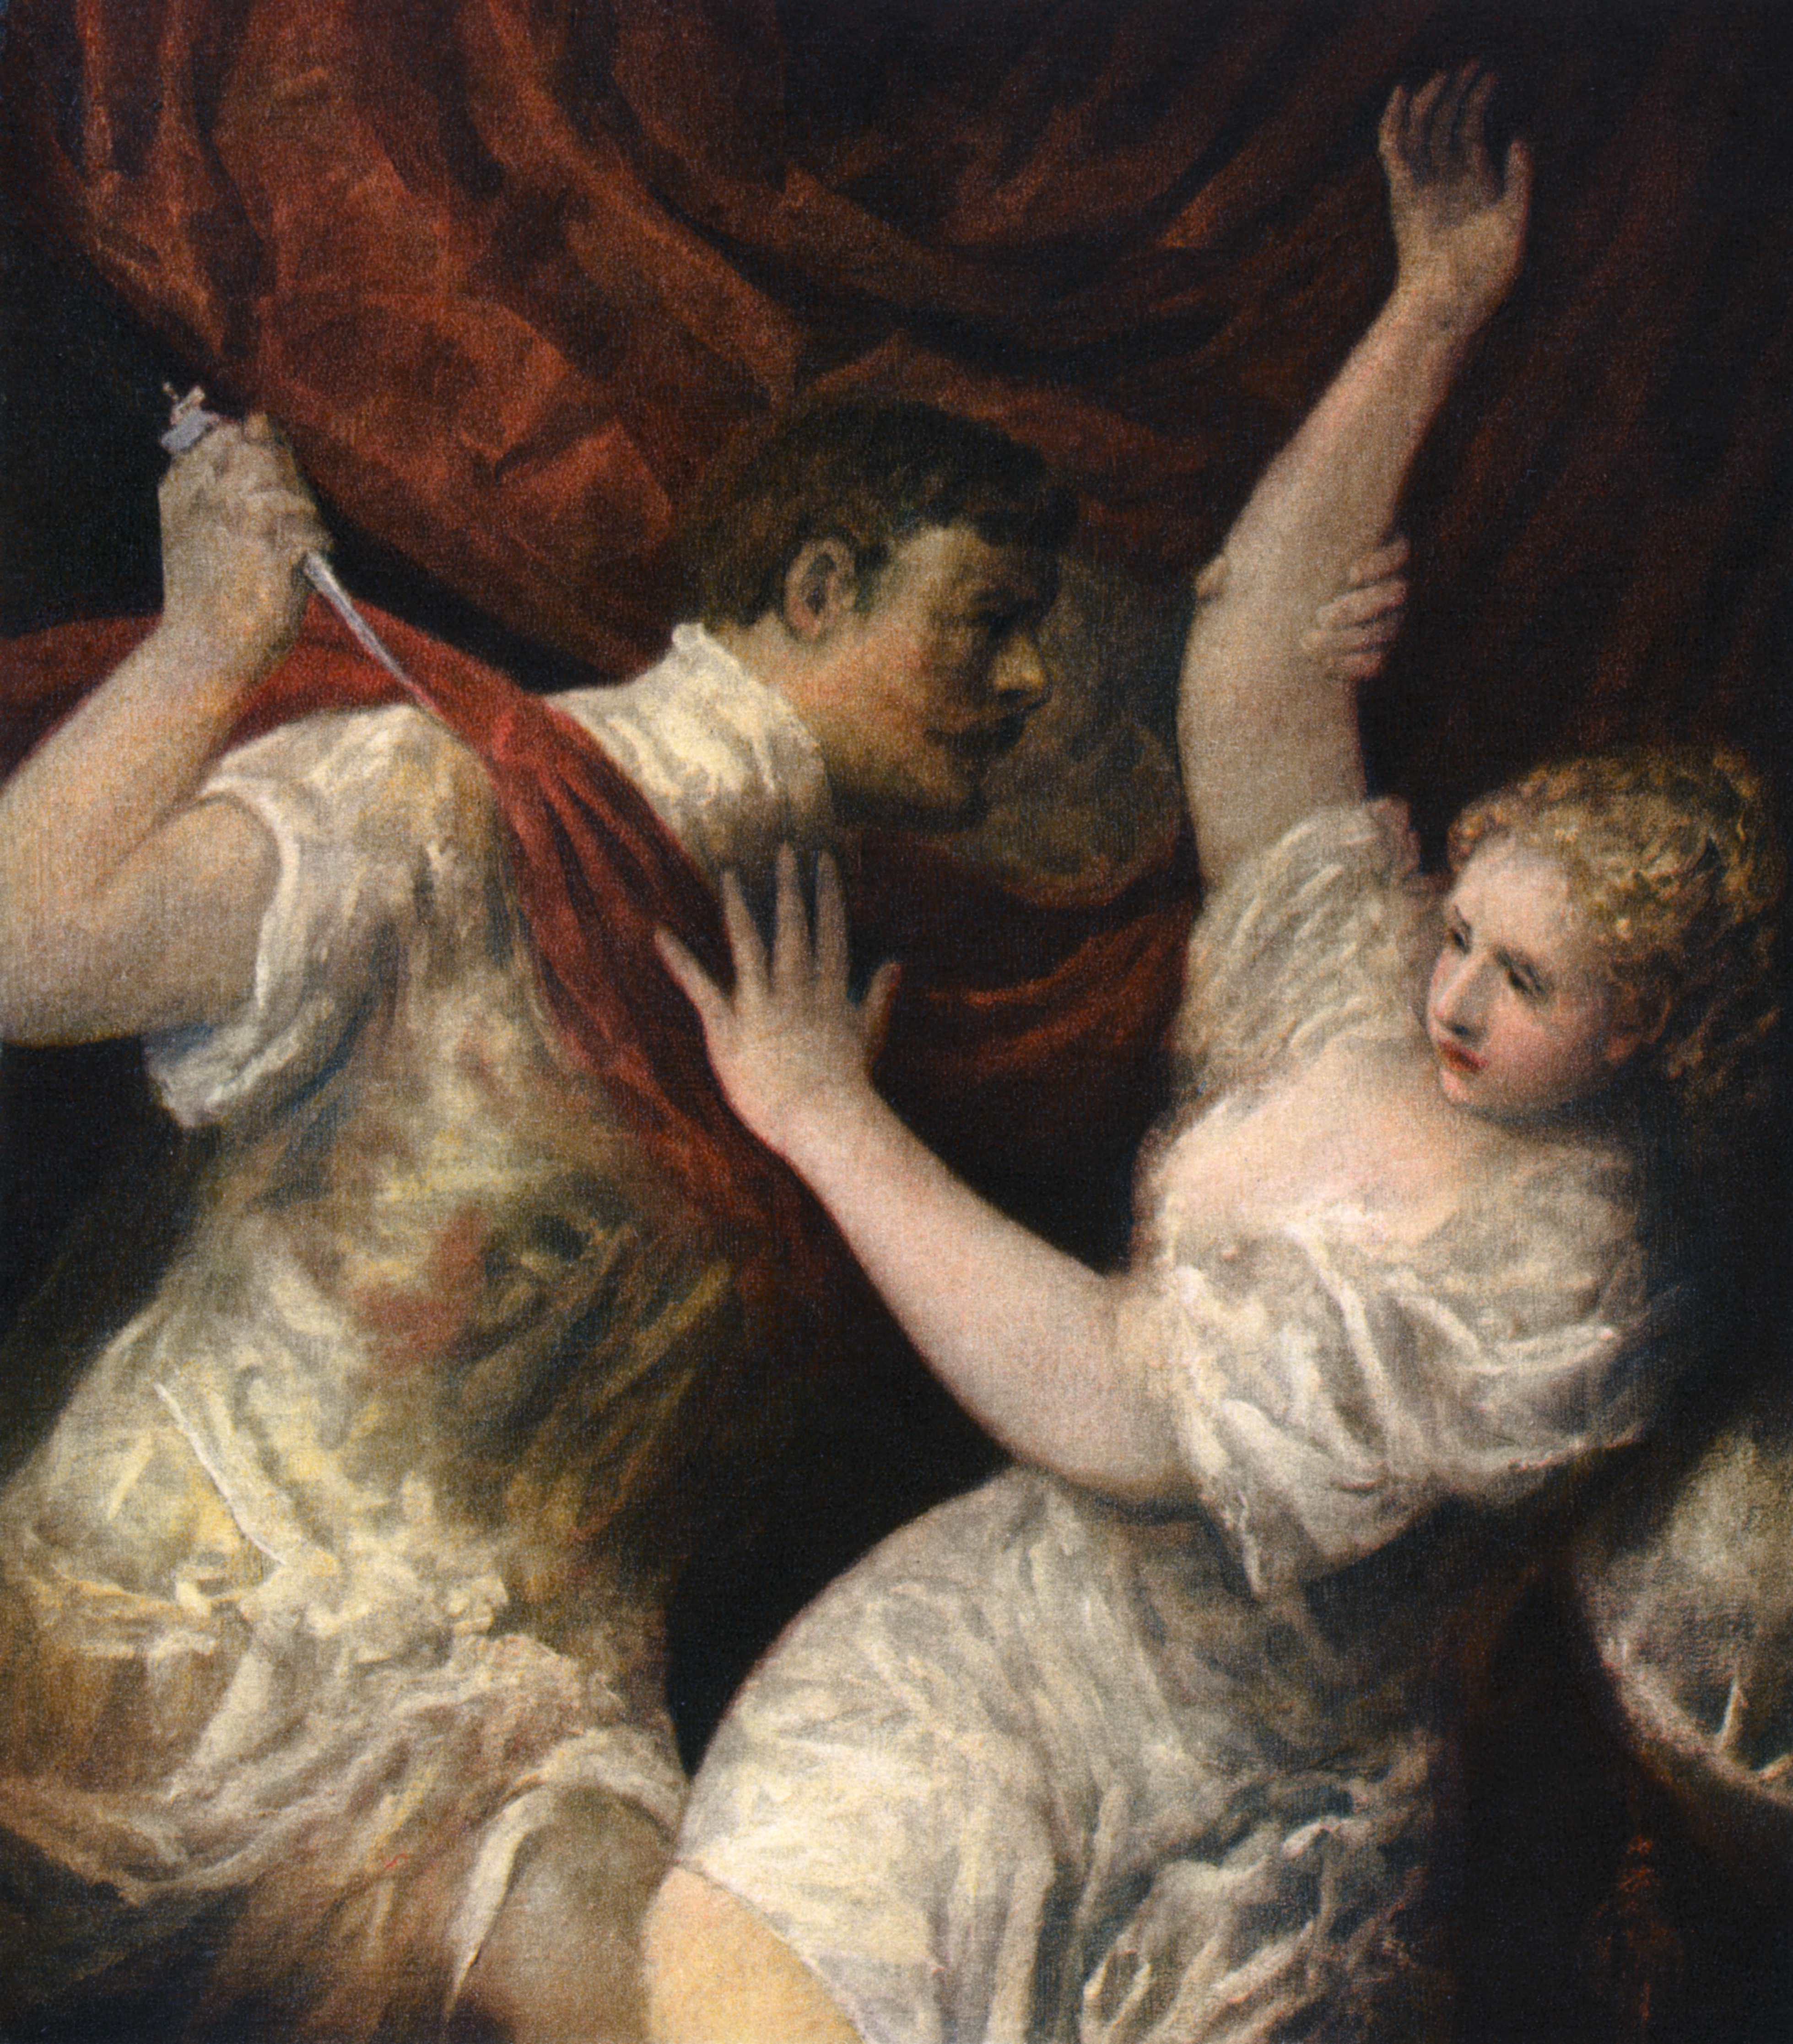 'Lucretia and Tarquinius', c1560s, (1937). A print from Titian Paintings and Drawings, introduction by Hans Tietze, Phaidon Press, Vienna, 1937. Found in the collection of the Akademie der Bildenden Künste, Vienna, Austria.